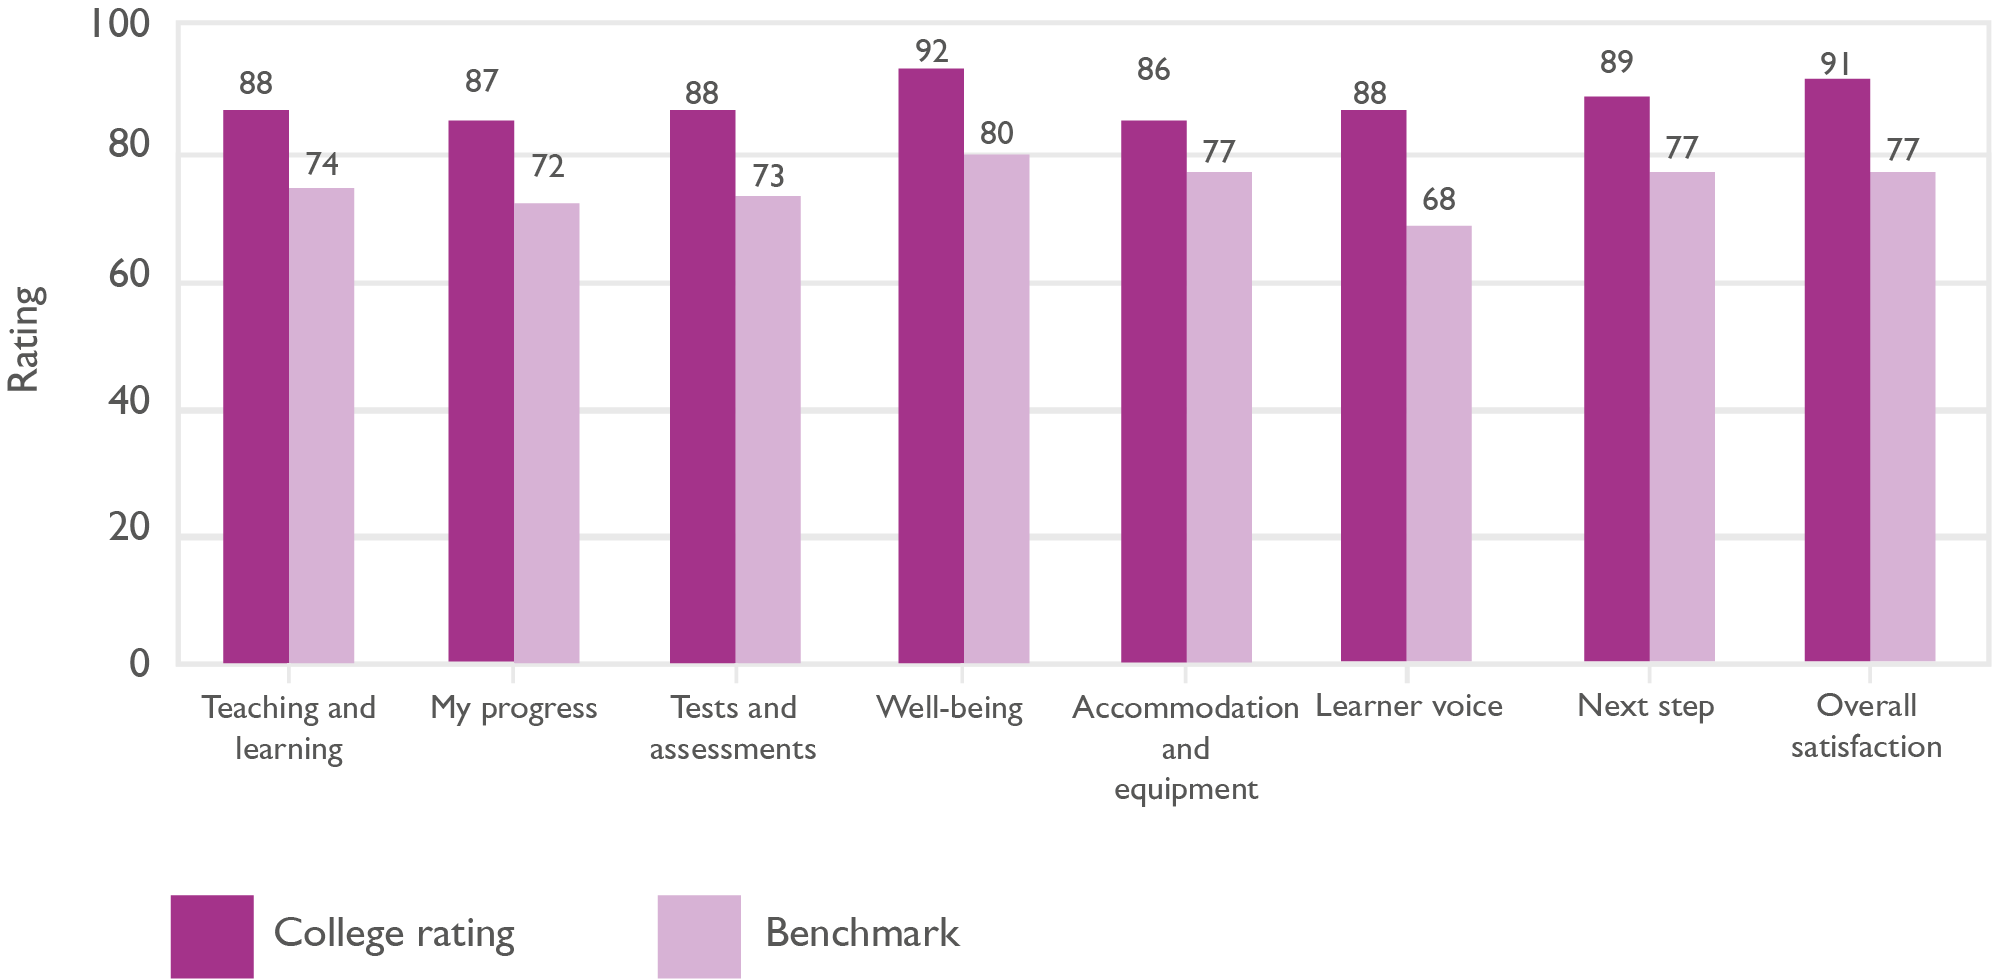 Bar chart showing year end adult learner satisfaction, based on QDP survey